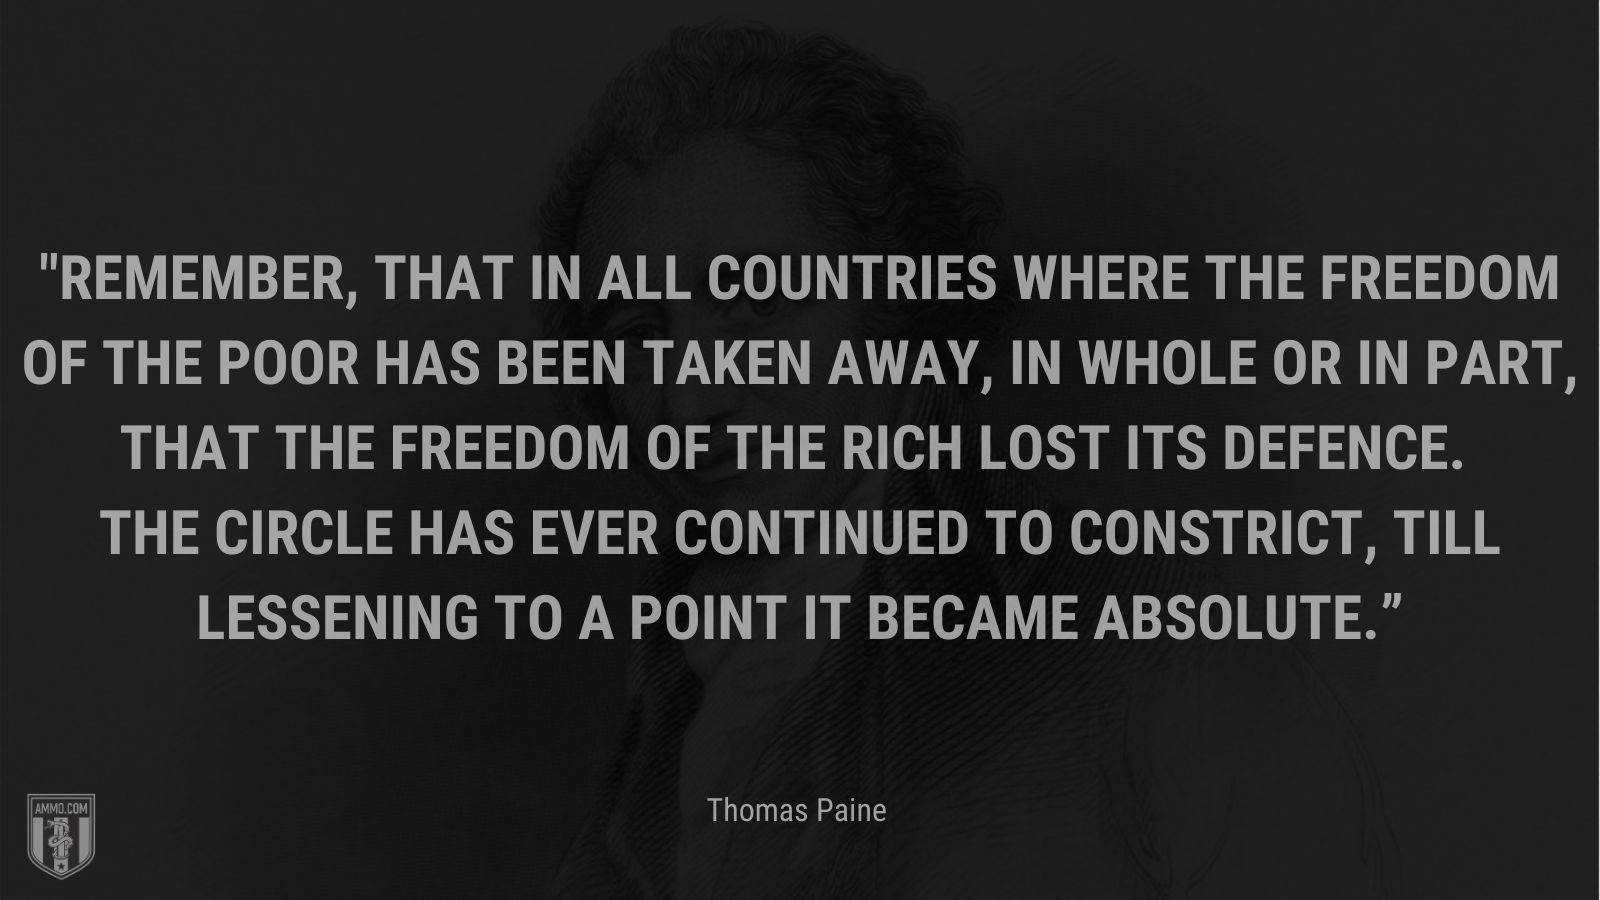 """""""Remember, that in all countries where the freedom of the poor has been taken away, in whole or in part, that the freedom of the rich lost its defence. The circle has ever continued to constrict, till lessening to a point it became absolute."""" - Thomas Paine"""